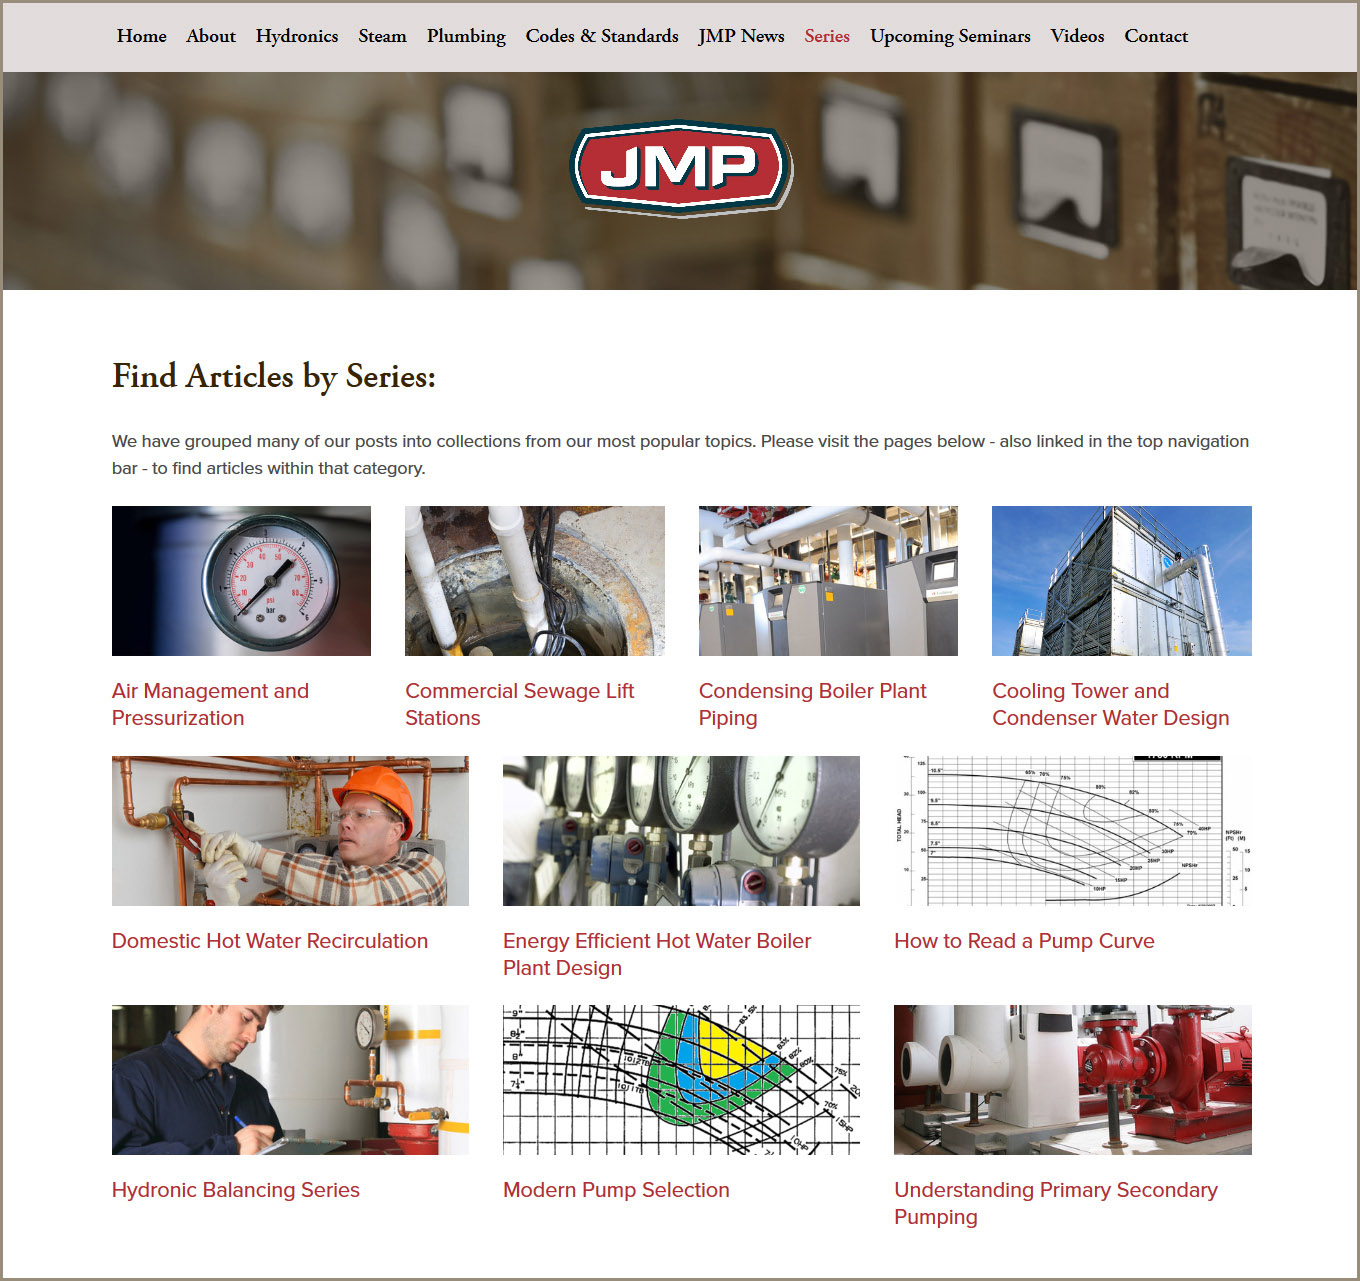 trish-holder-web-writing-for-jmp-co-blog-hvac-article-series-landing-page.jpg